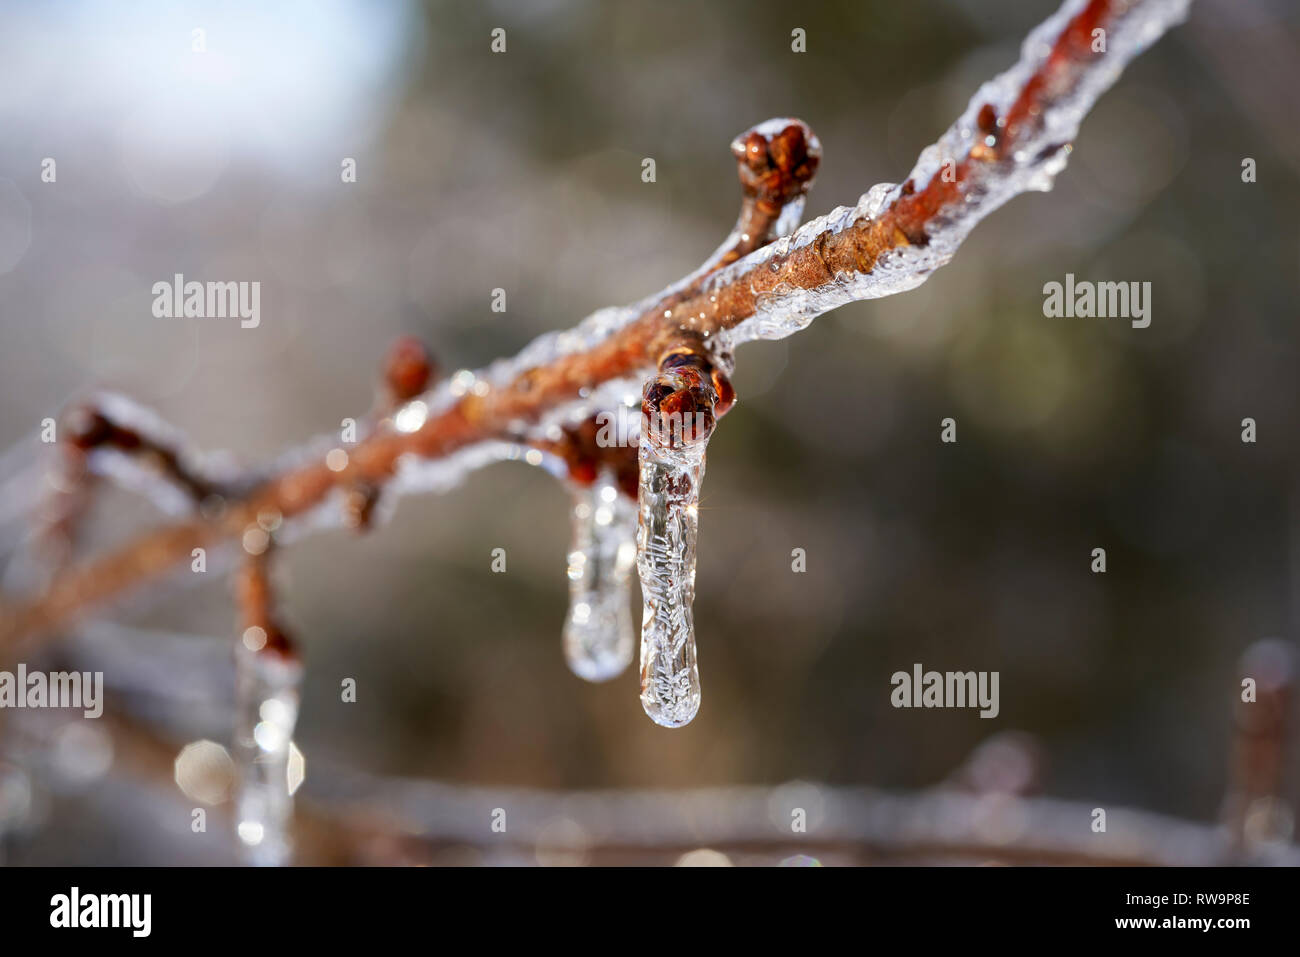 Tree branches covered by ice after freezing rain storm - Stock Image